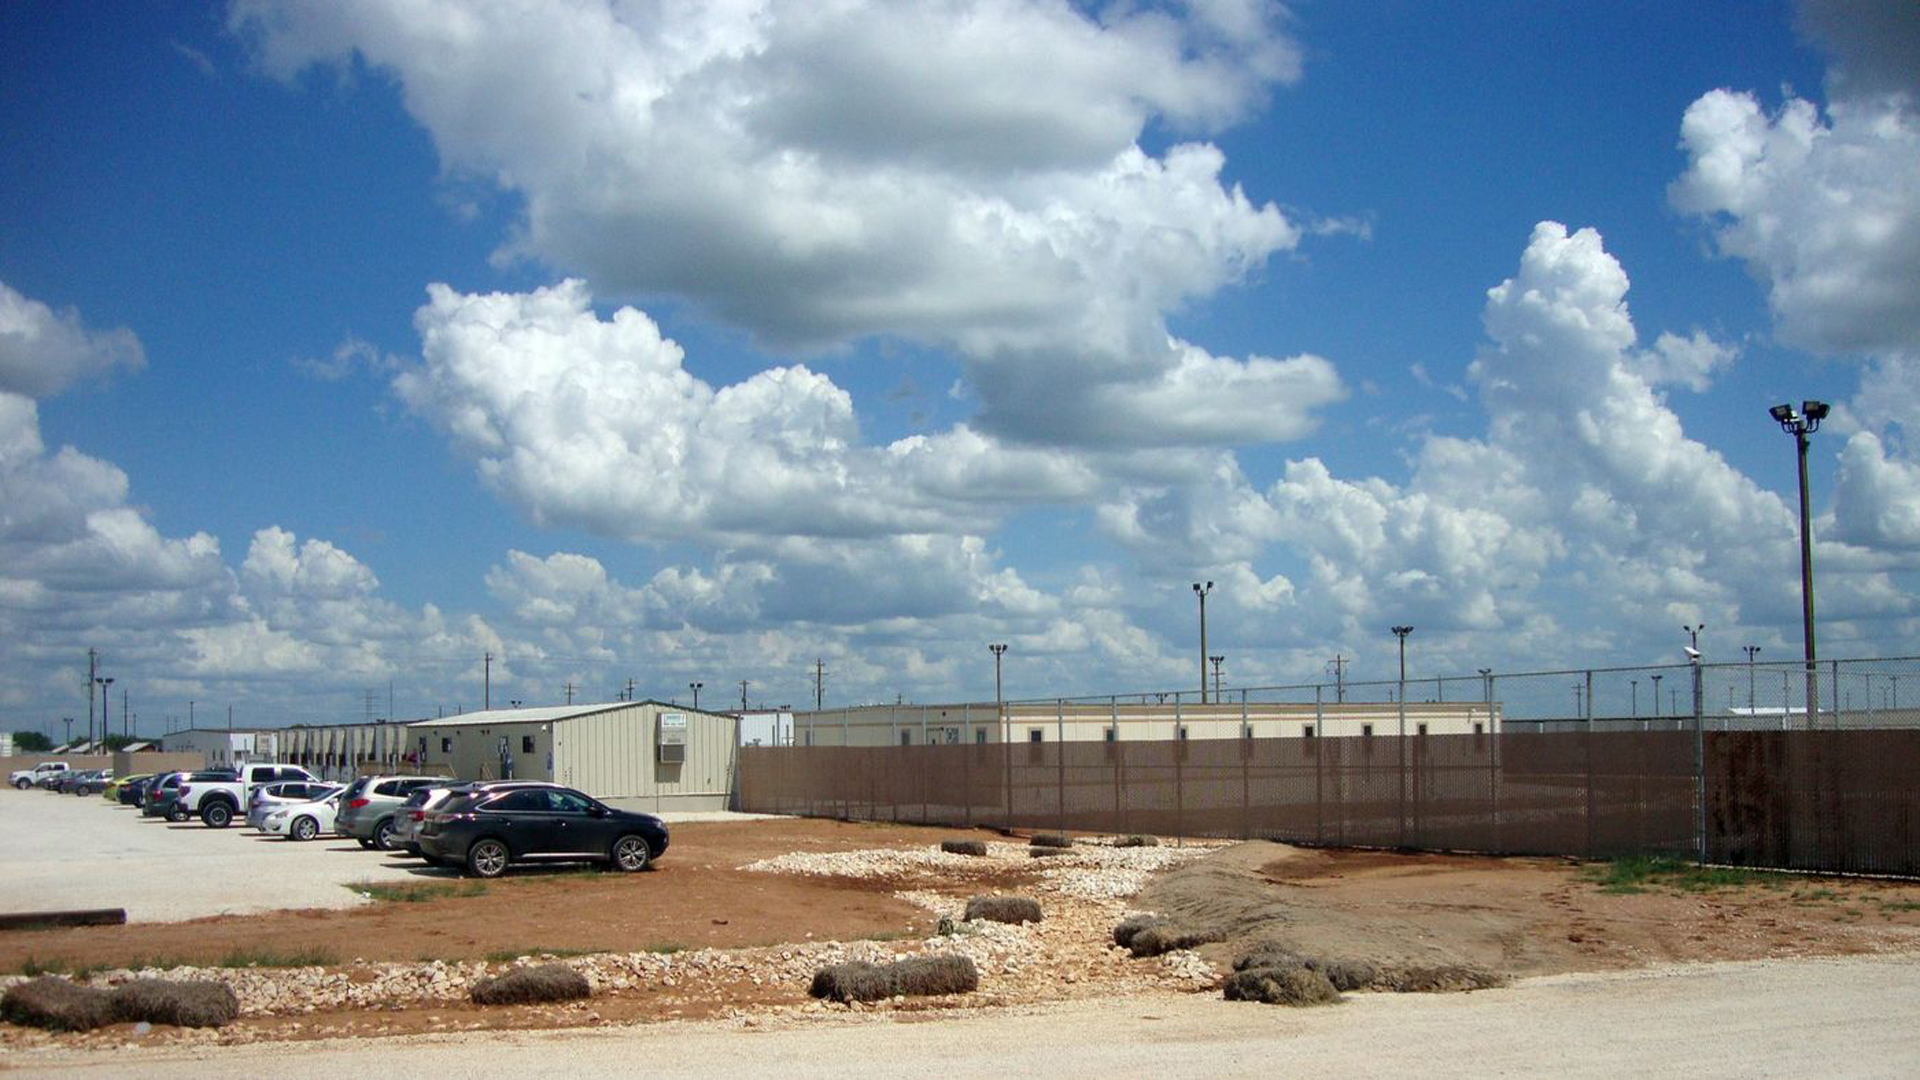 The South Texas Family Residential Center is the largest of the nation's three immigration detention centers for families. (Molly Hennessy-Fiske / Los Angeles Times)